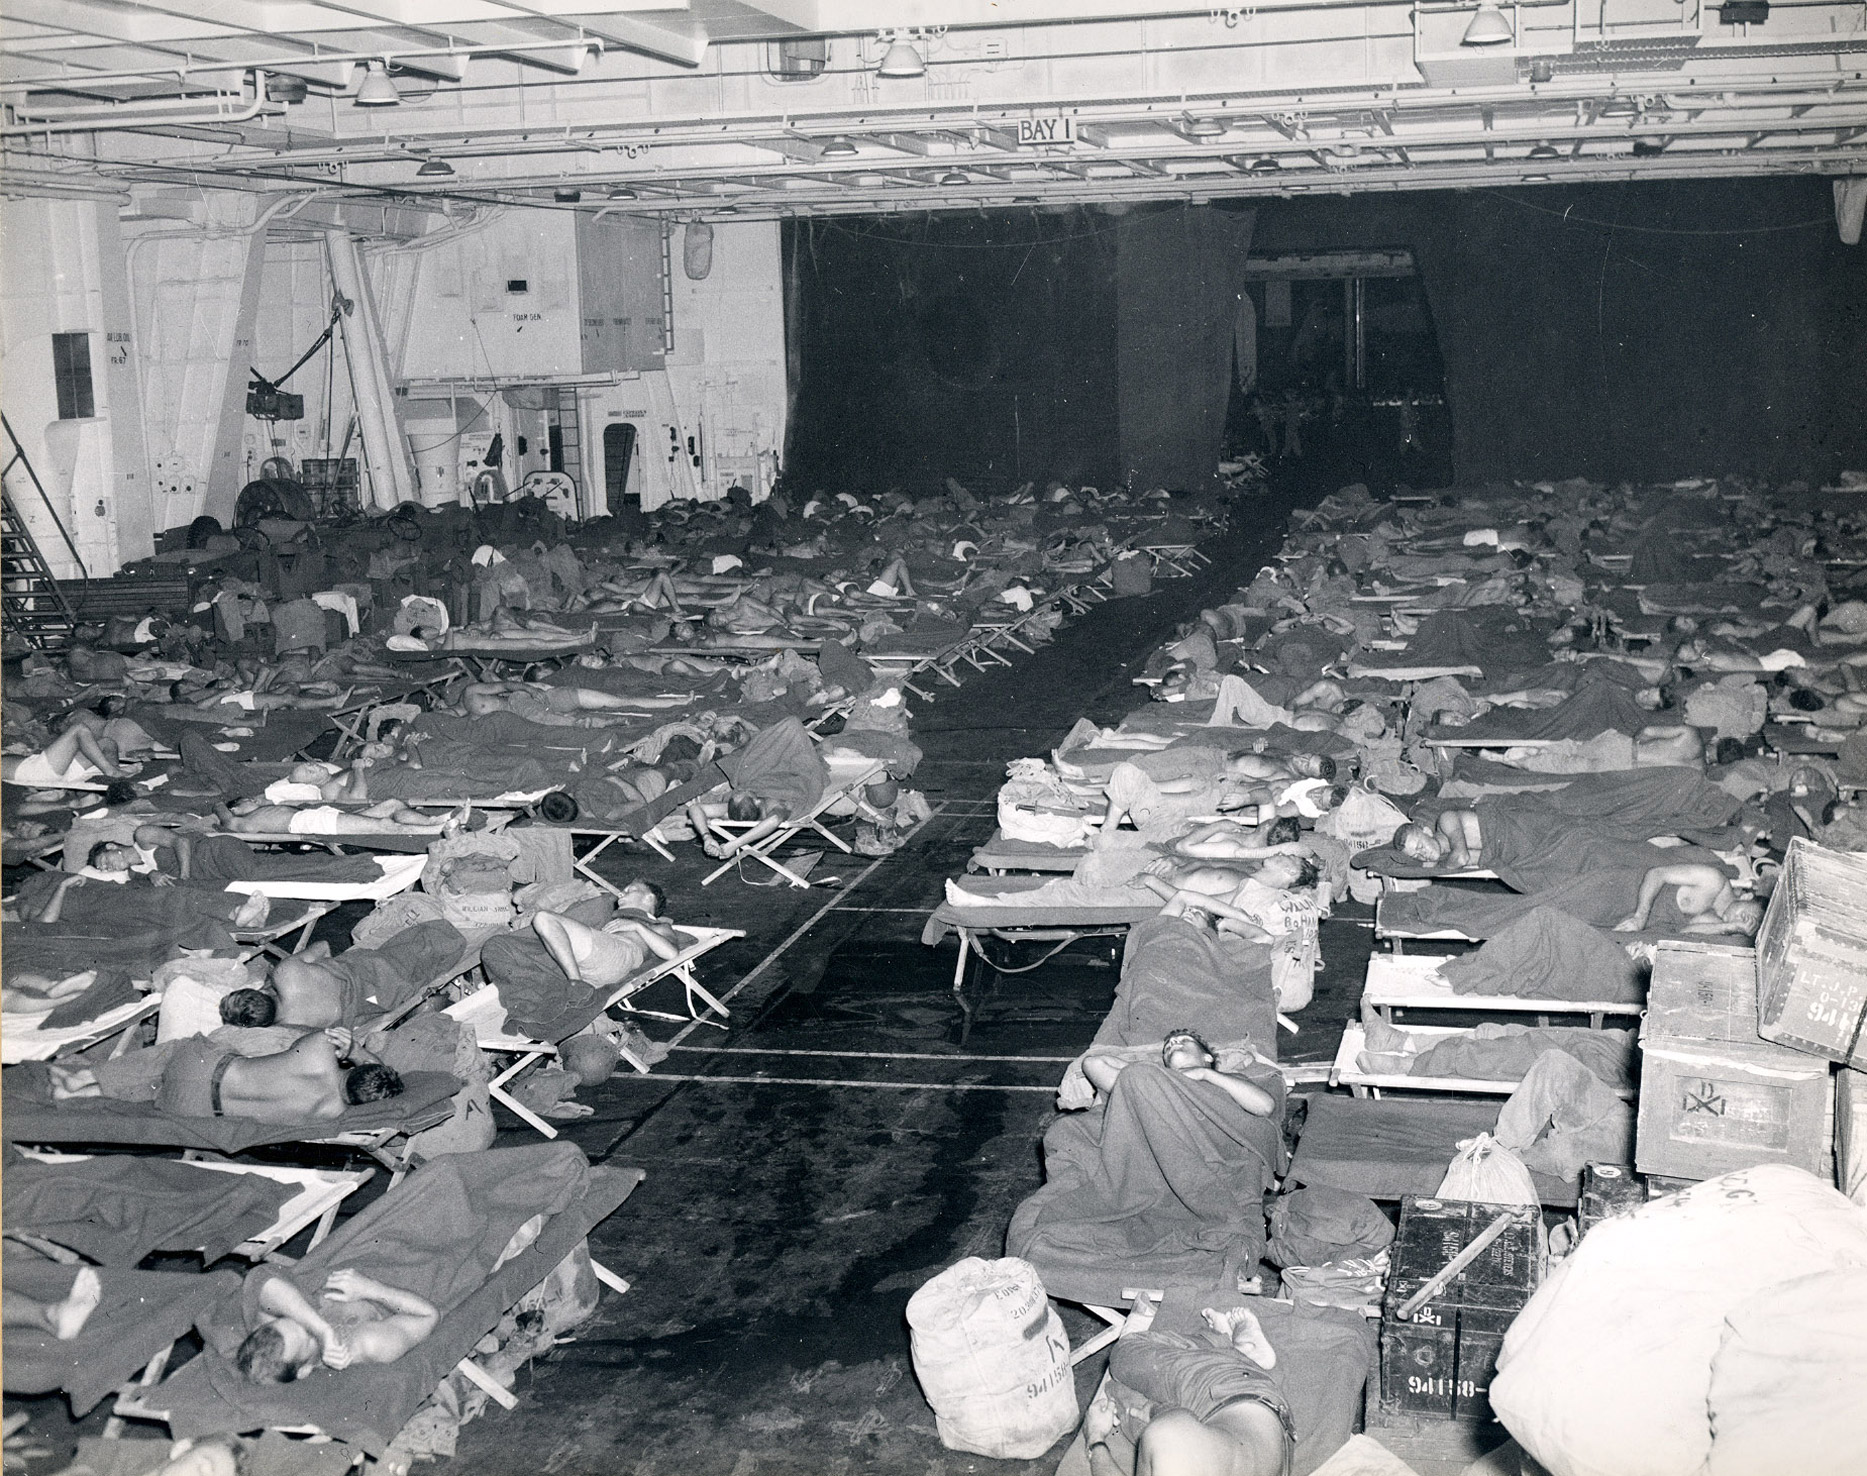 Personnel being transported back to the States on board Intrepid (CV 11) during Operation Magic Carpet. This image is part of a photograph album detailing the wartime service of the carrier Intrepid (CV 11) in the Pacific during World War II.